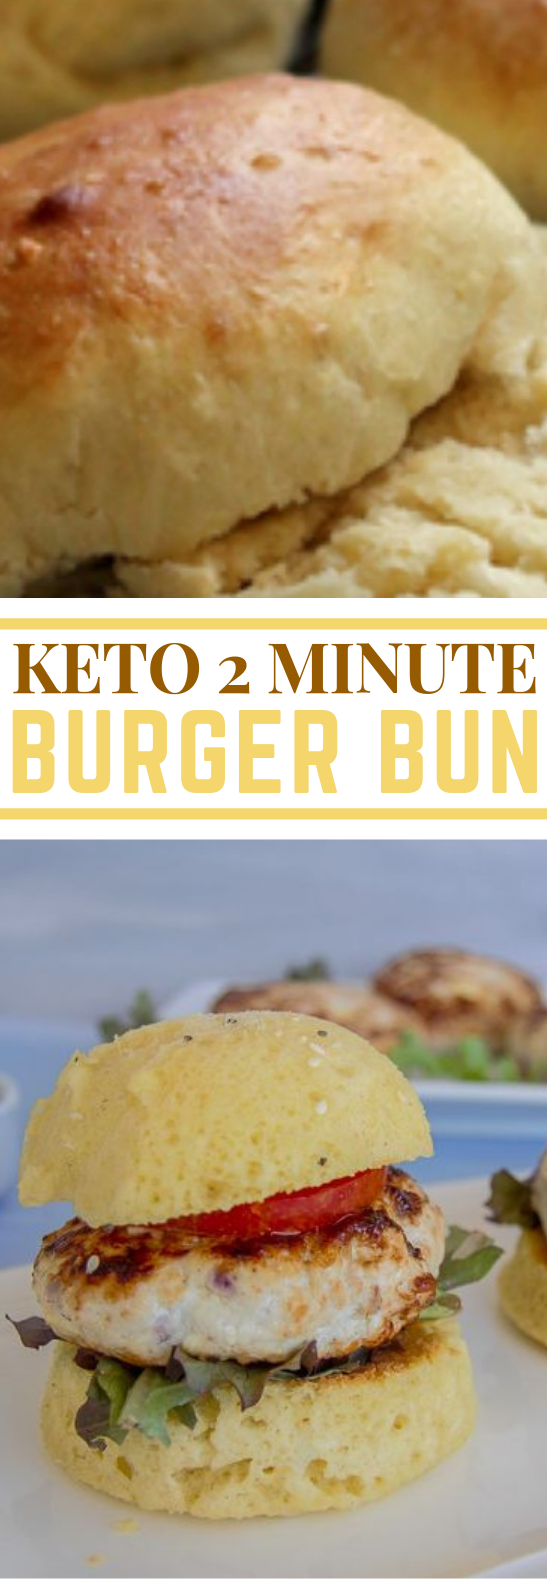 BEST KETO TWO MINUTE BURGER BUN #ketodiet #lowcarb